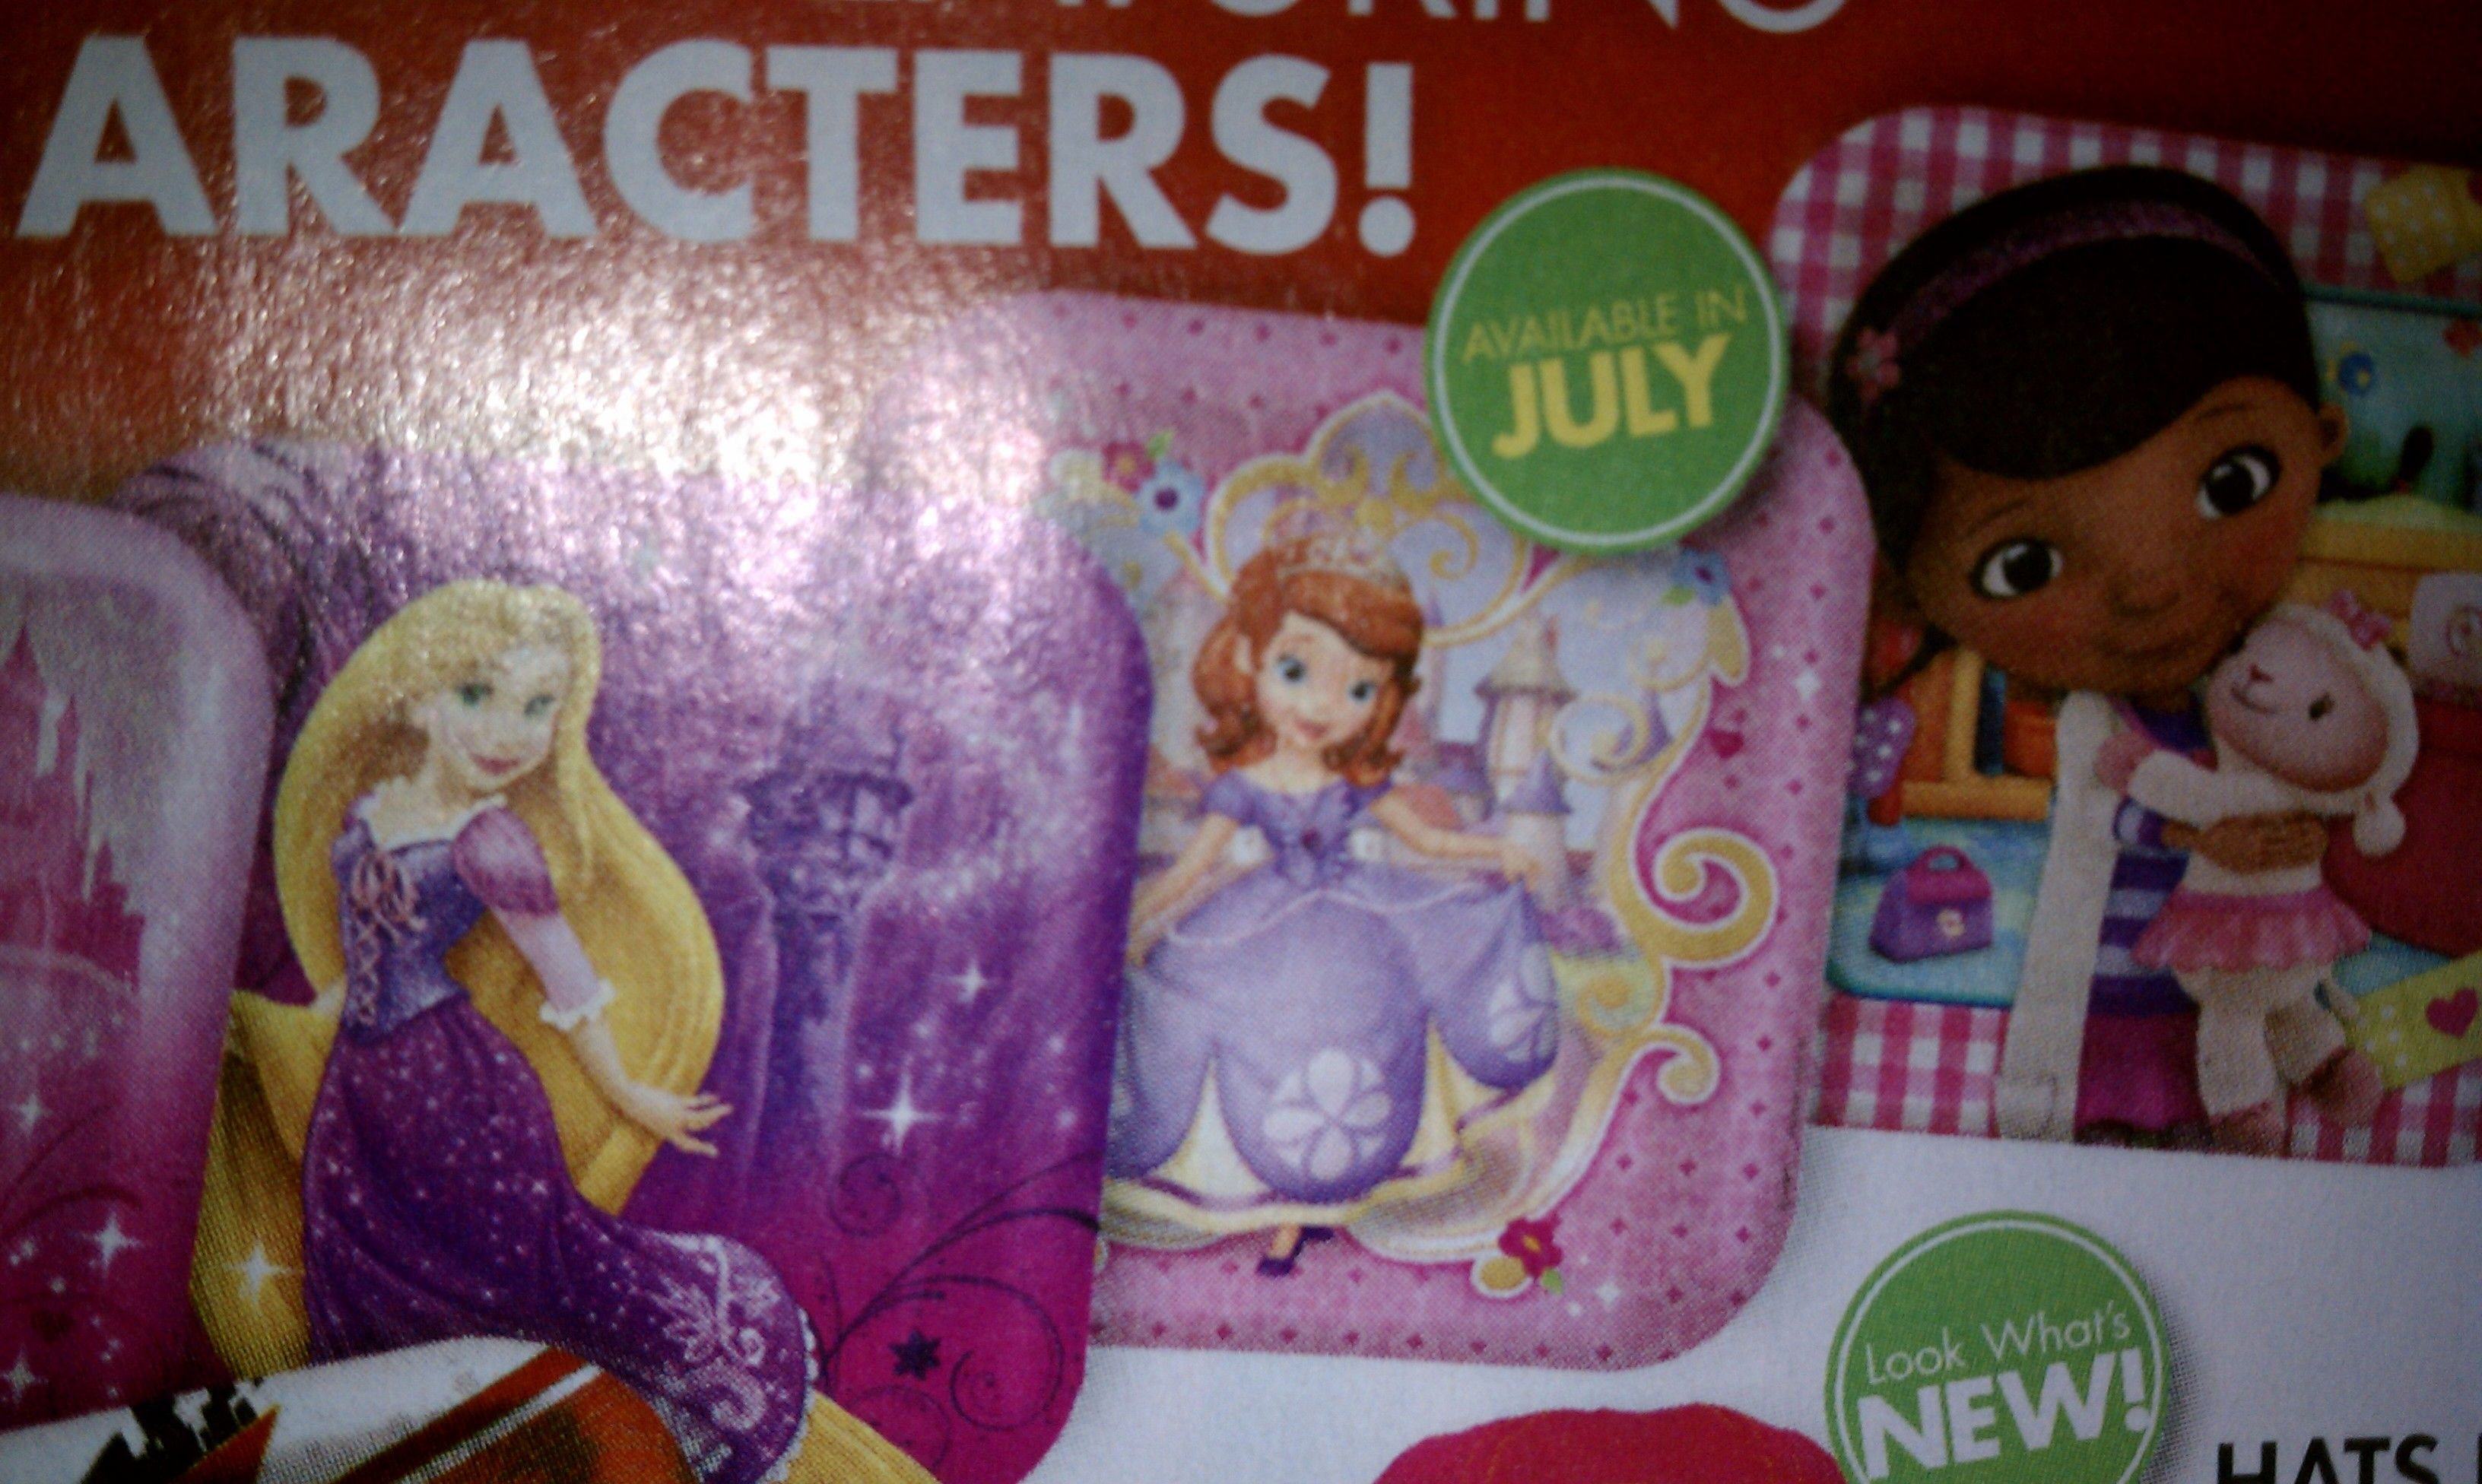 SOFIA THE FIRST PARTY SUPPLIES AVAILABLE AT PARTY CITY IN JULY ...